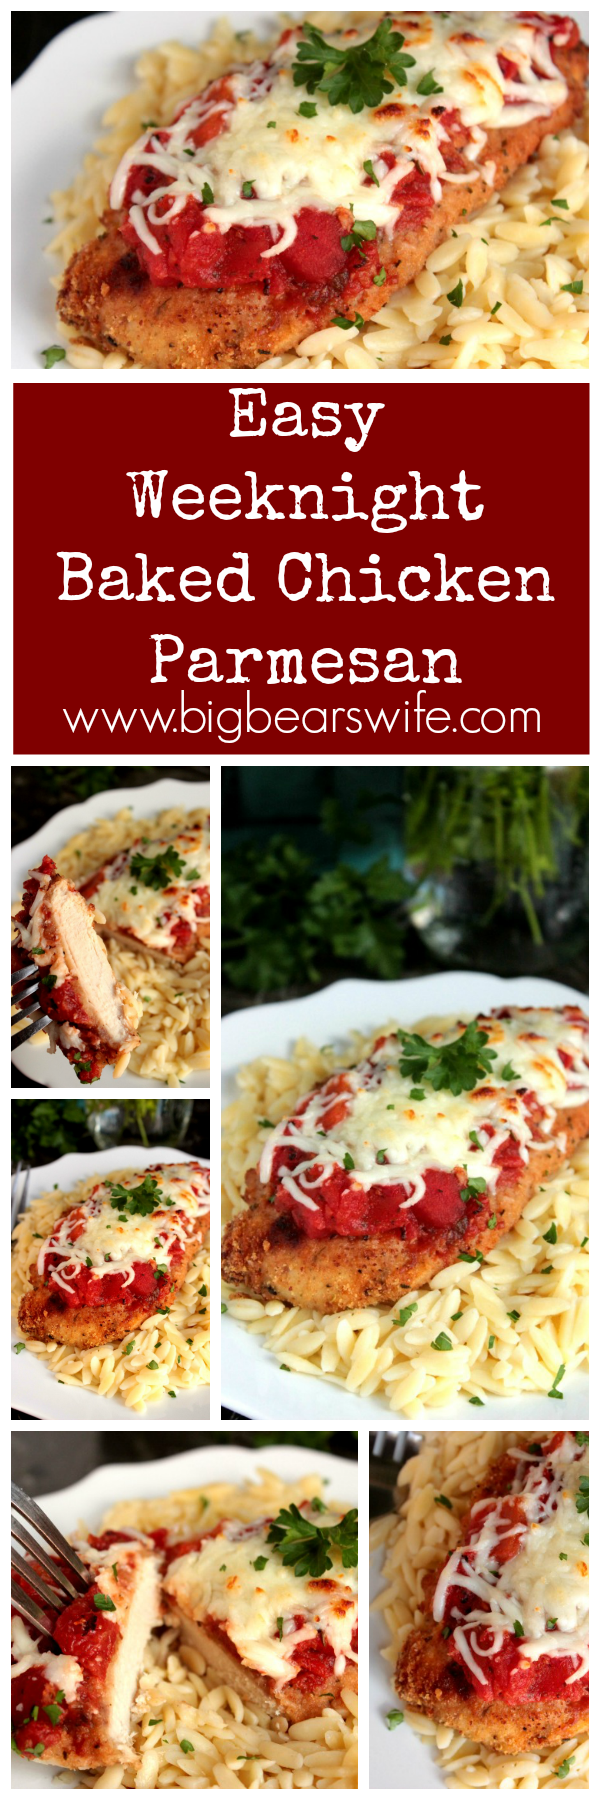 Easy Weeknight Baked Chicken Parmesan